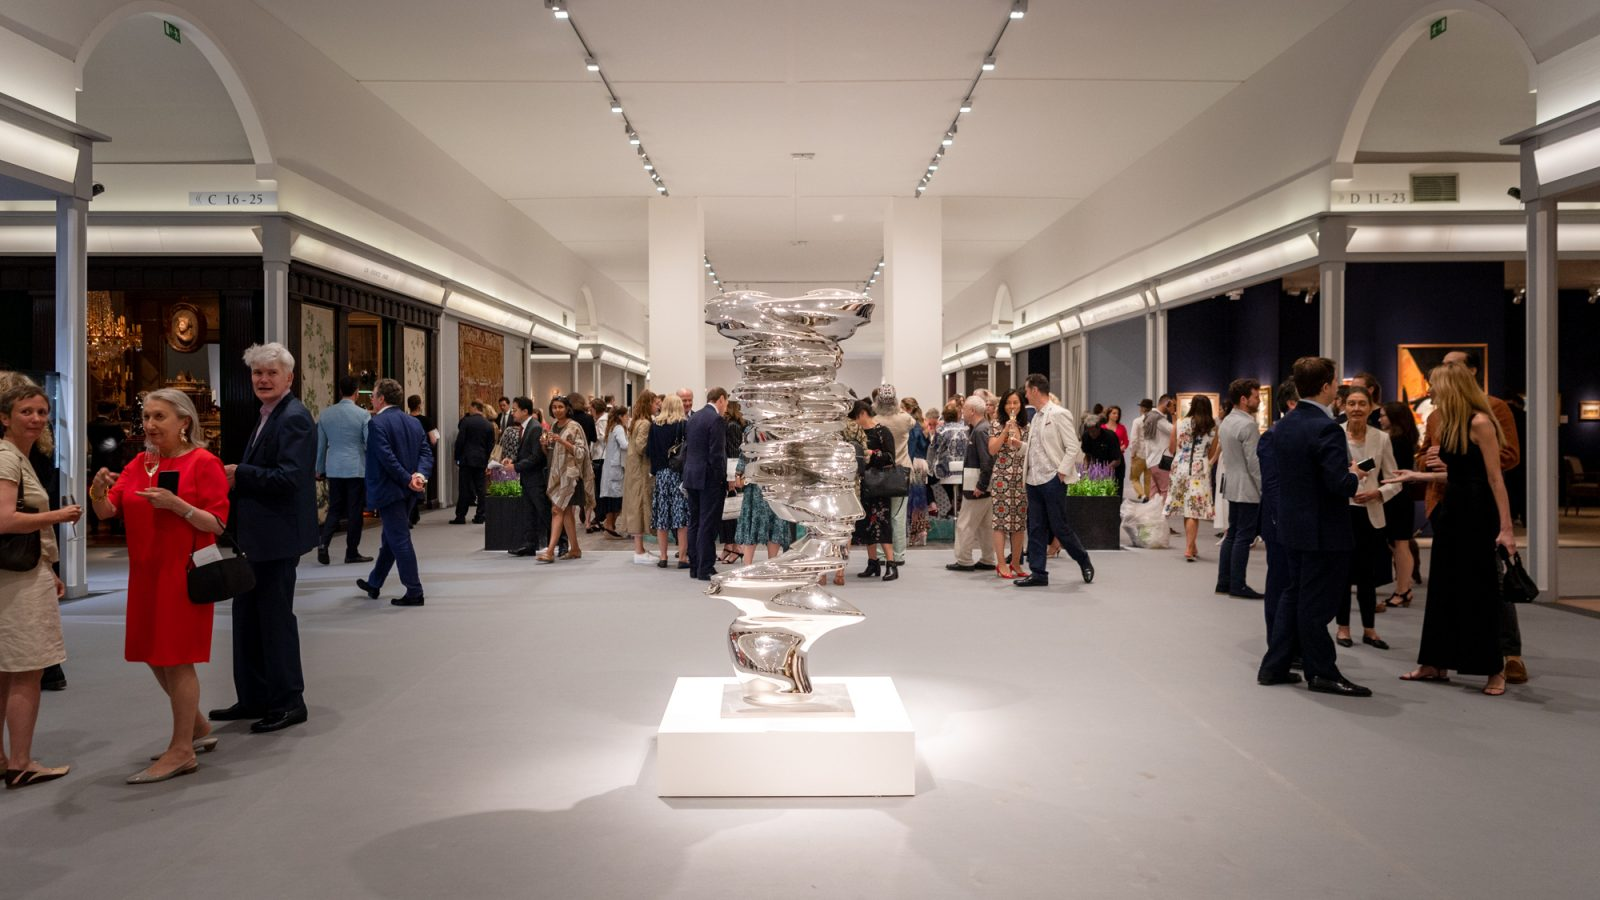 Installation view of Tony Cragg, Bust, 2014 from Jerome Zodo Gallery at Masterpiece London 2019, photography Ben Fisher, Courtesy Masterpiece London